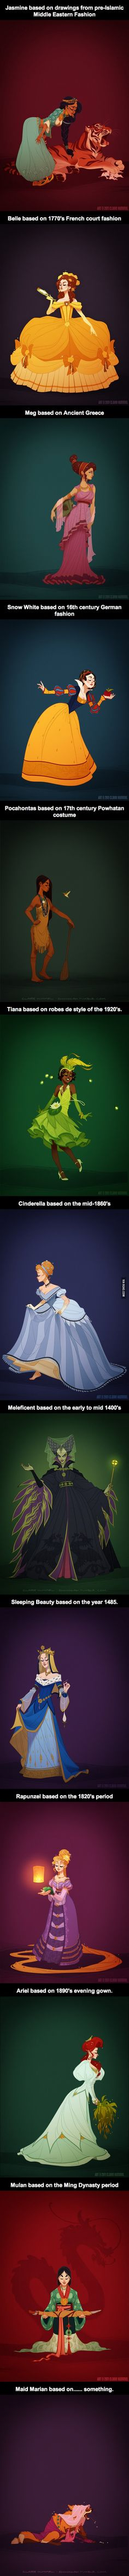 Disney Princesses Based on Historical Period Fashion. Oh Gawd, the last one... I'm dying.